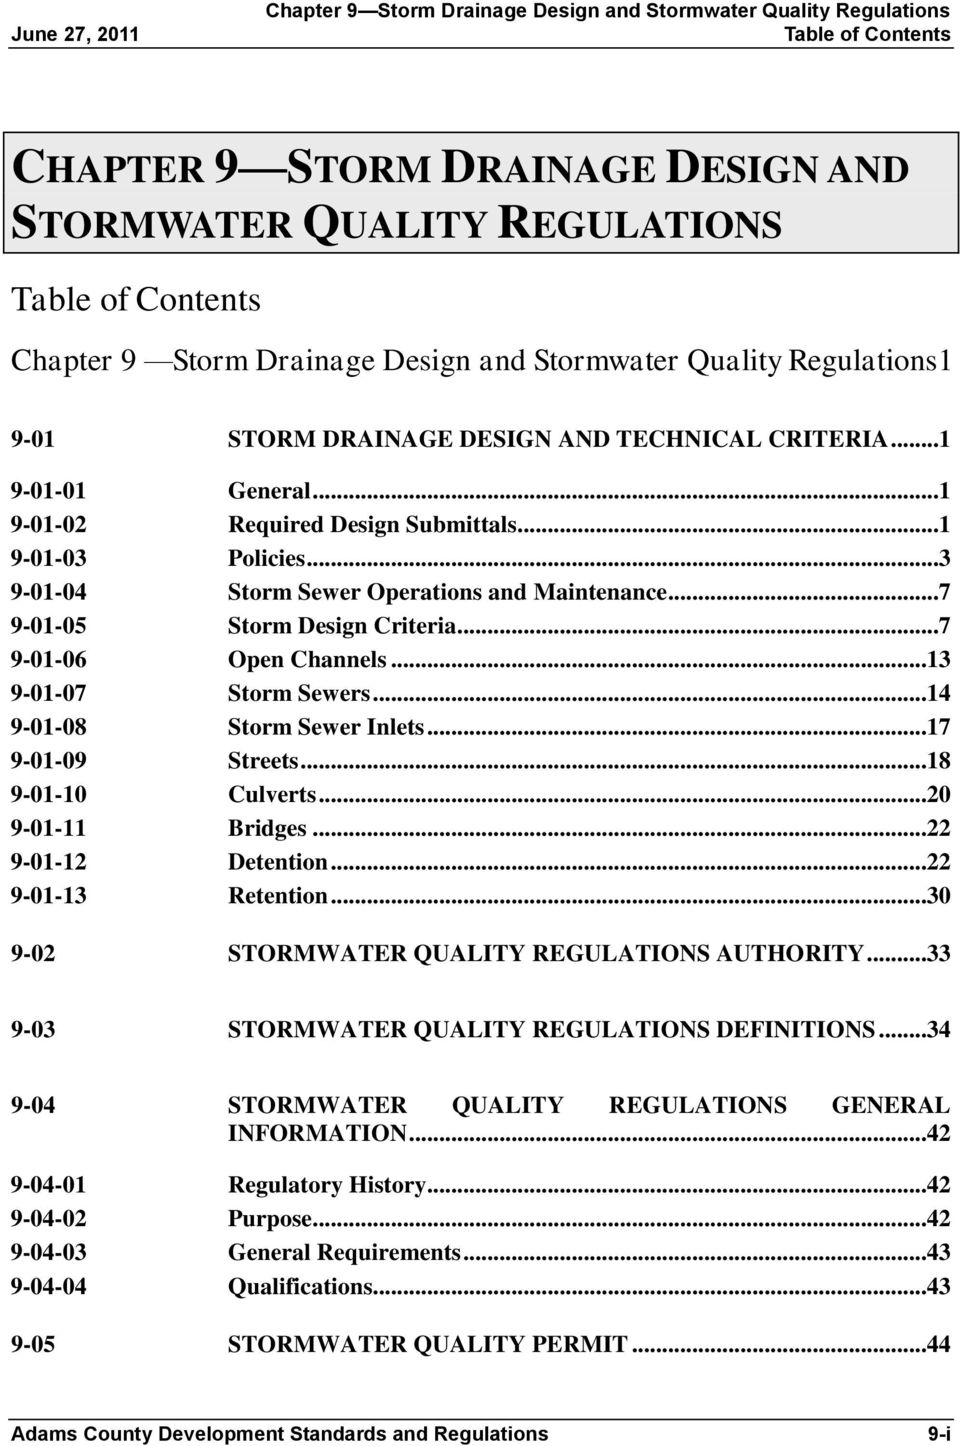 CHAPTER 9 STORM DRAINAGE DESIGN AND STORMWATER QUALITY